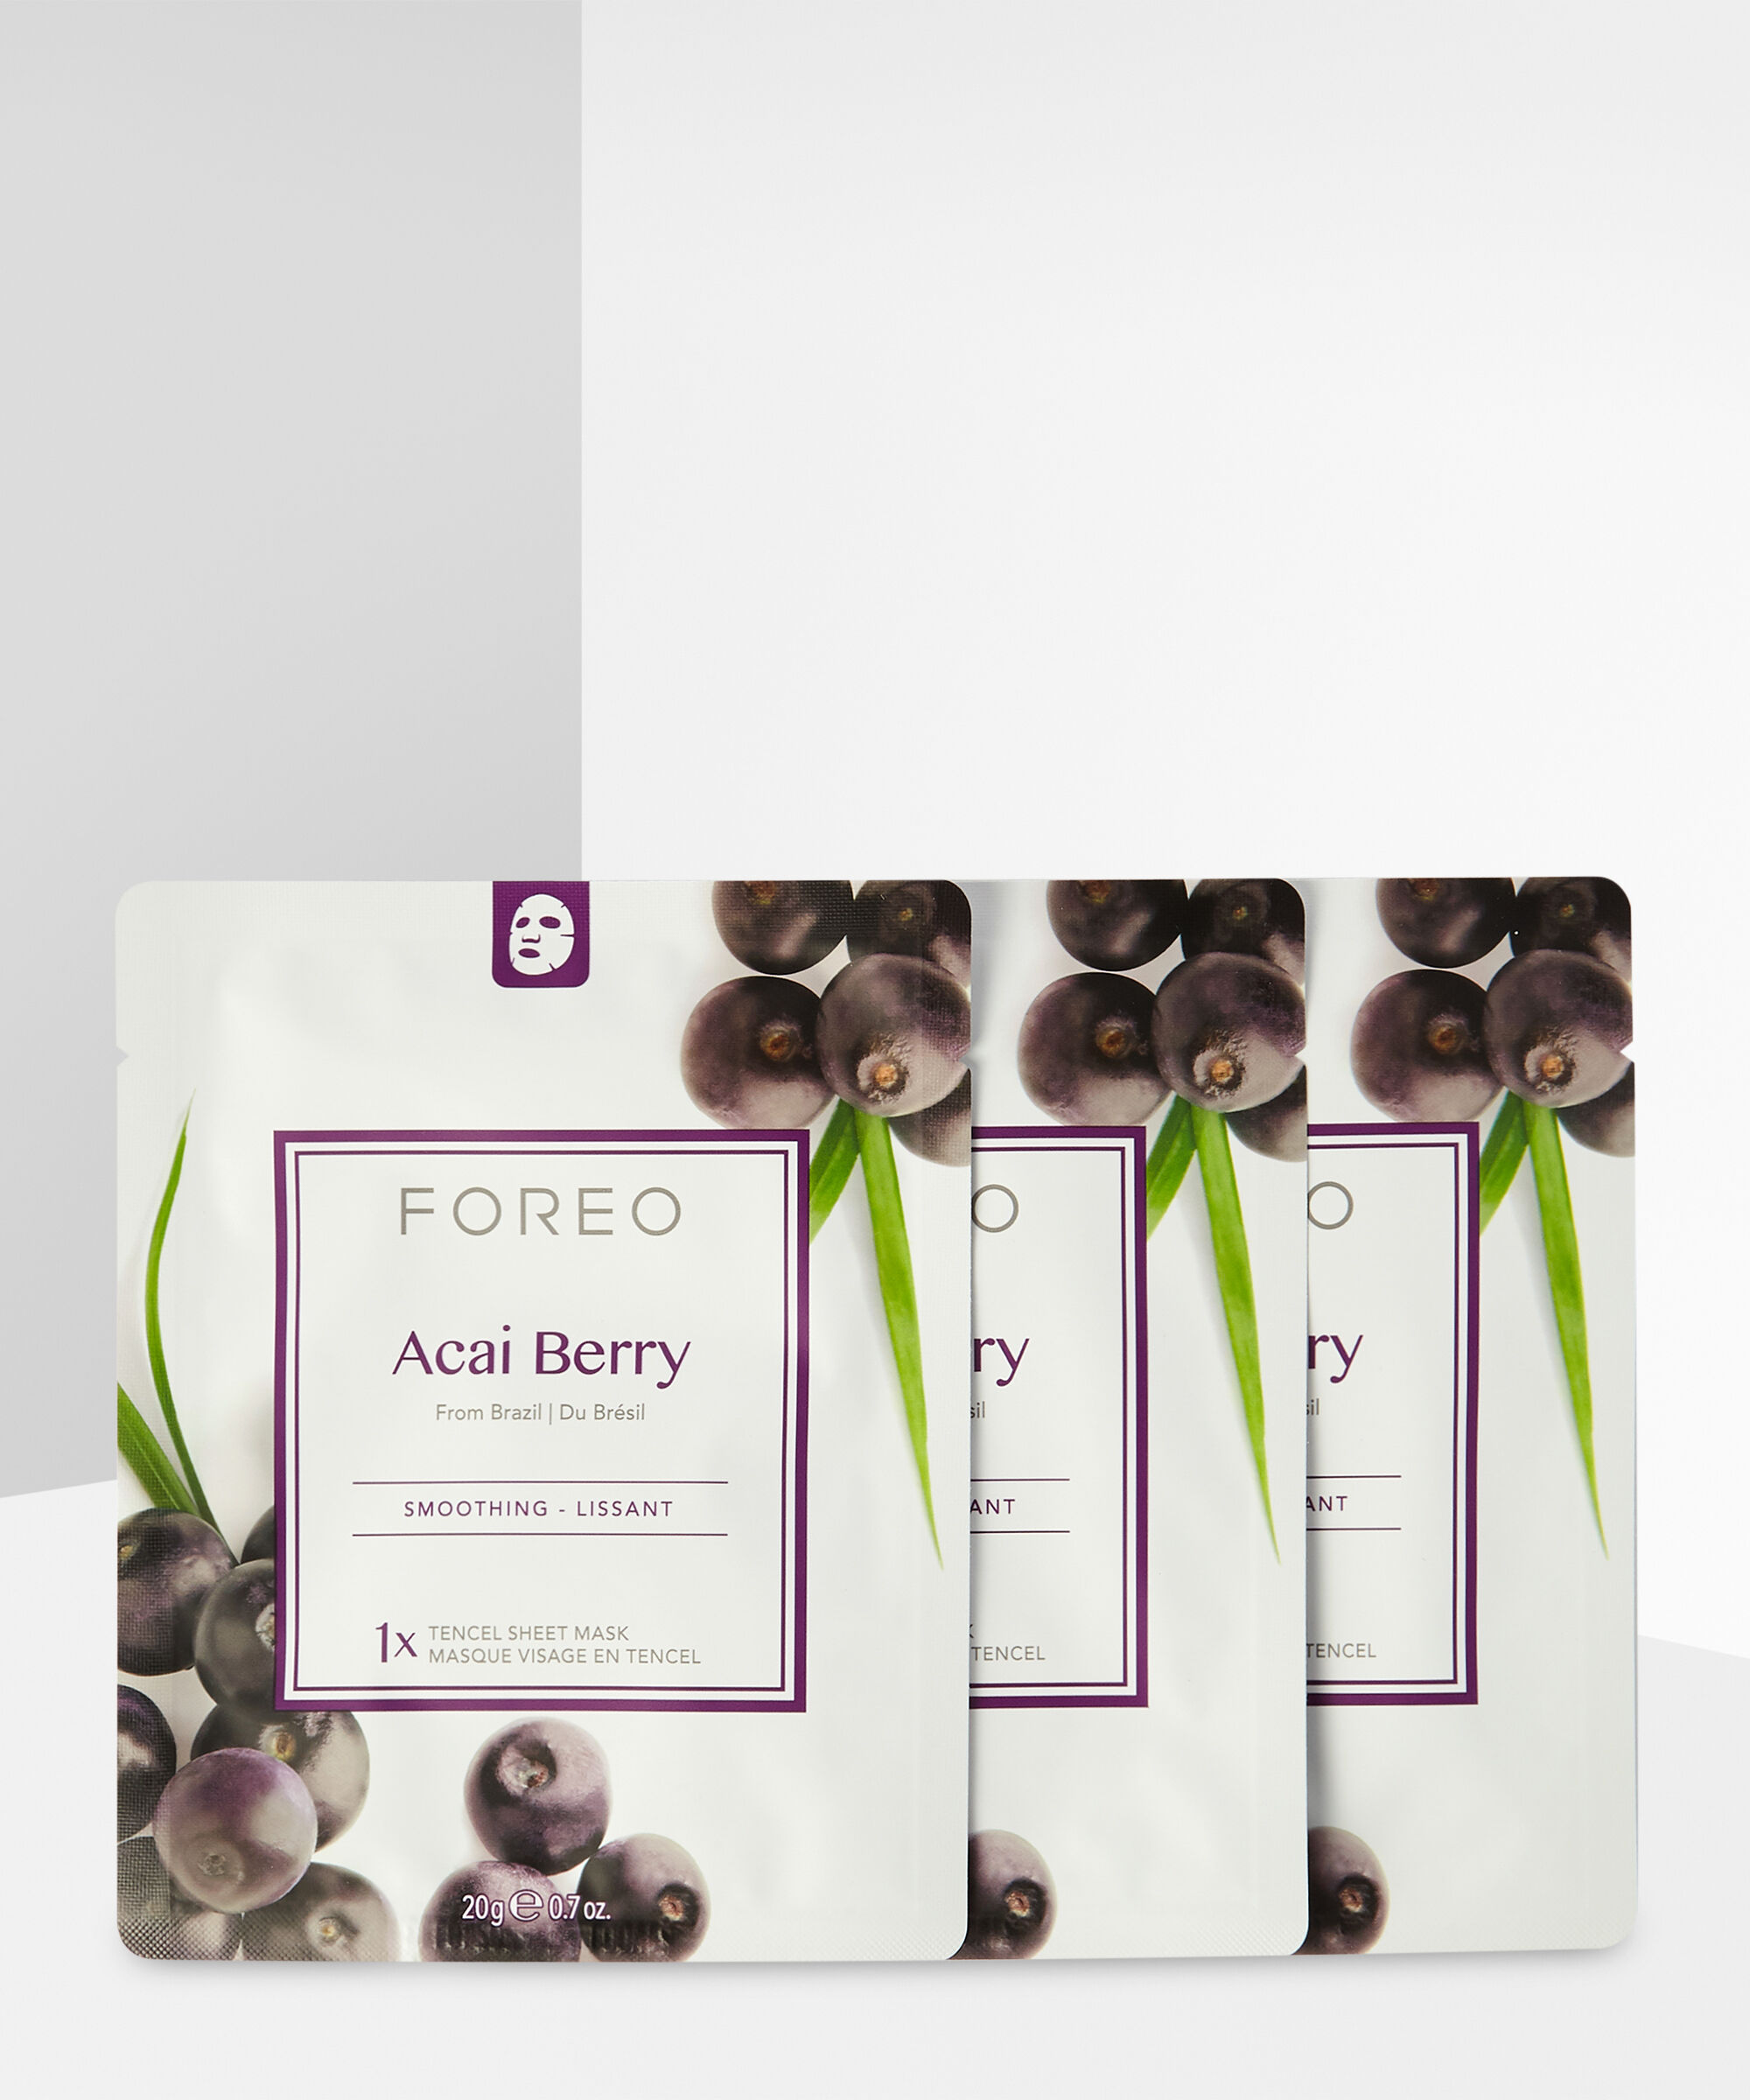 Foreo - Acai Berry Firming Sheet Face Mask